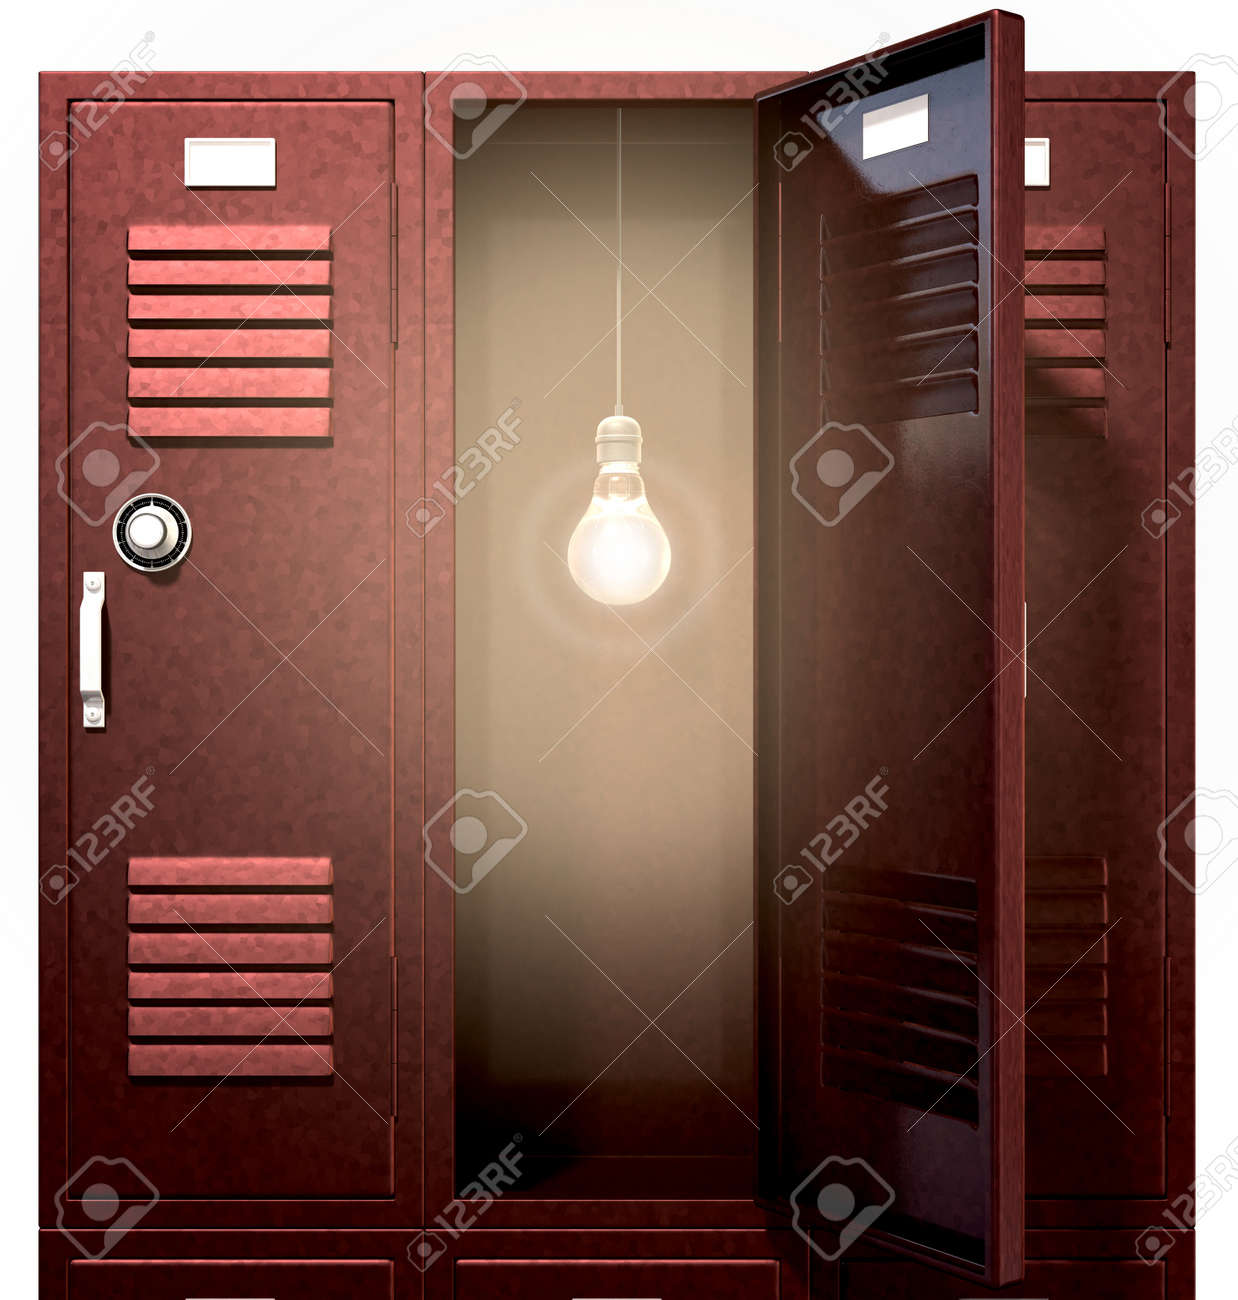 Attrayant A Stack Of Red Metal School Lockers With One With An Open Door With An  Illuminated